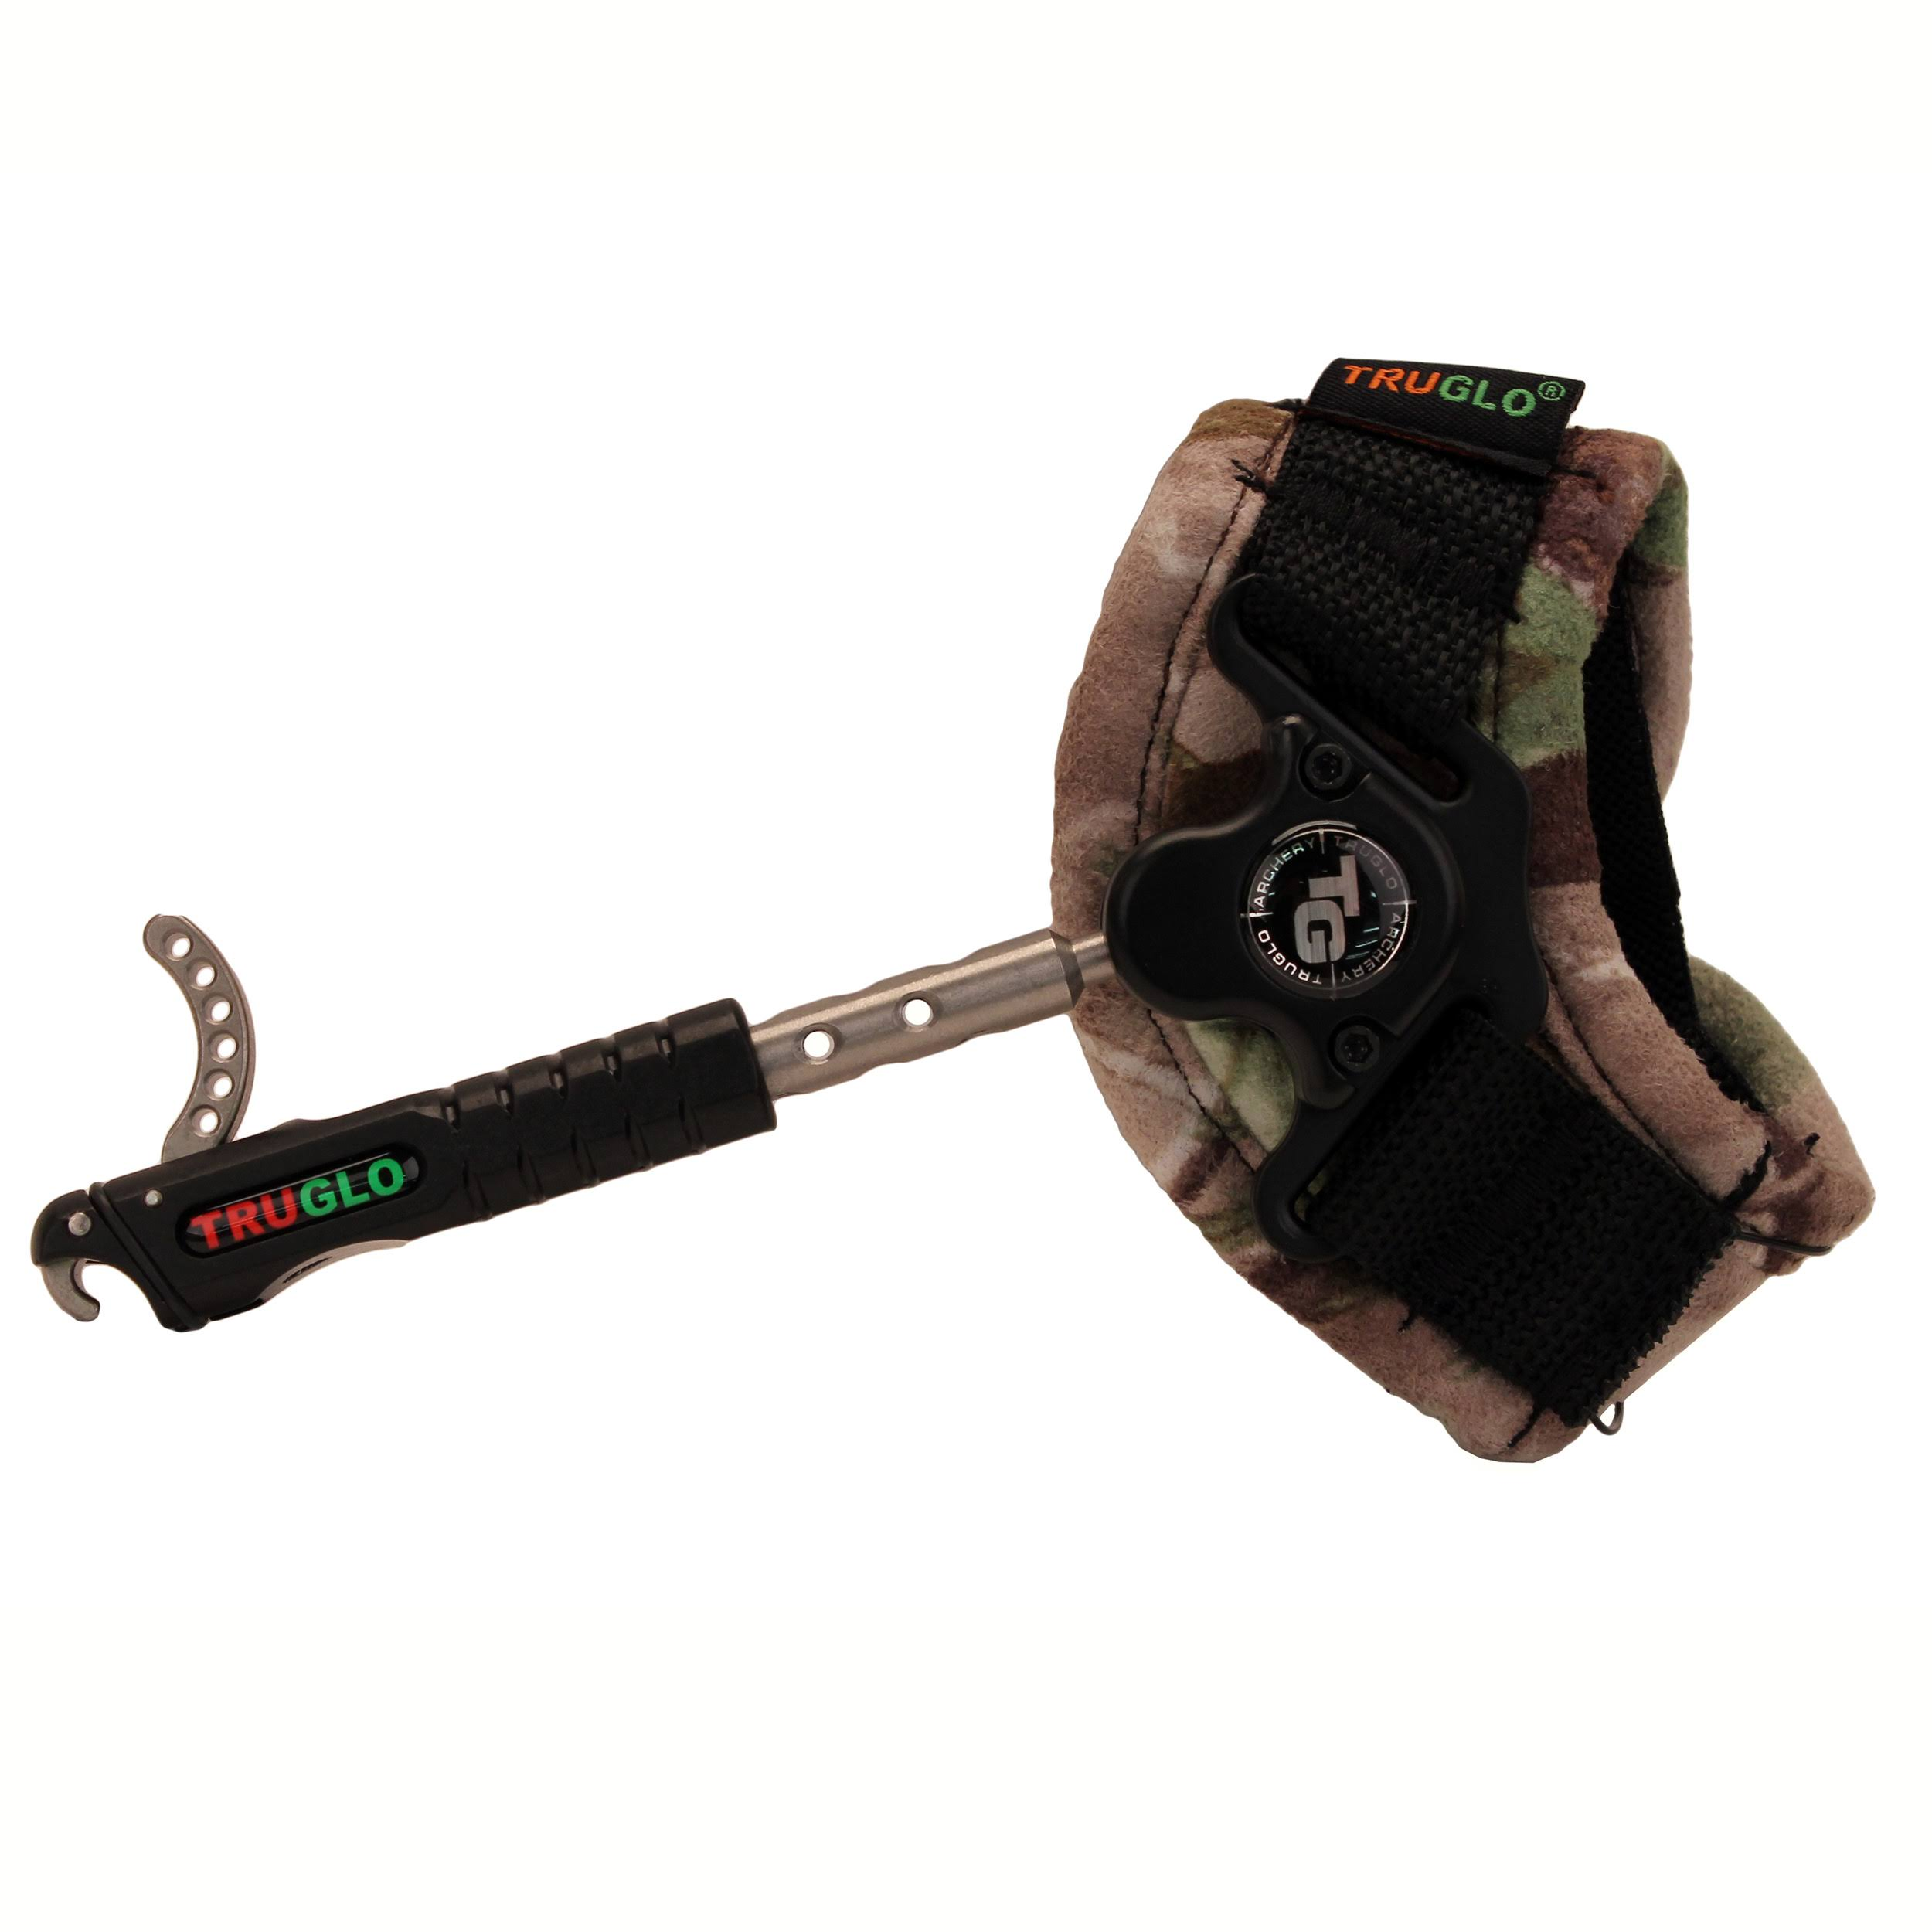 Truglo Detonator Release BOA Mechanical Connector - Camo